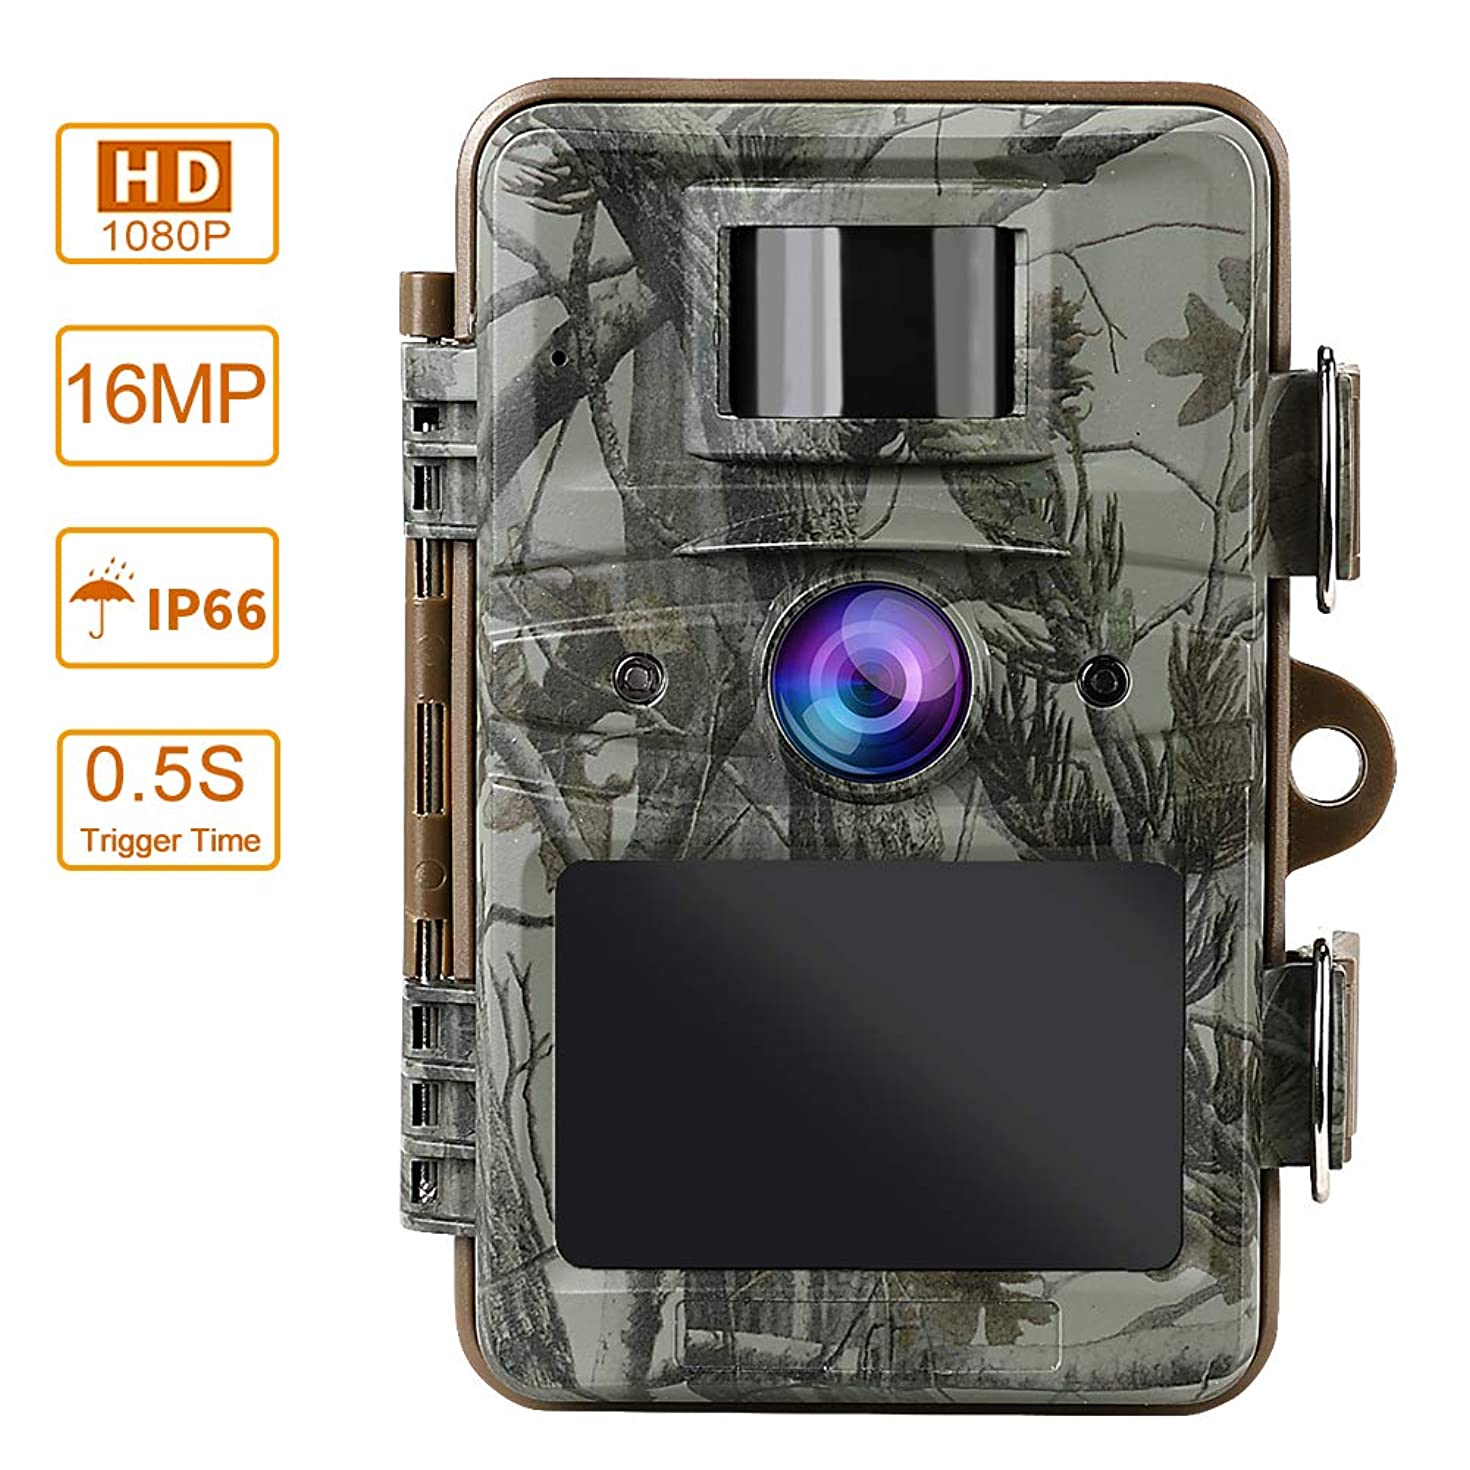 MOPHOTO Trail Camera 16MP 1080P Hunting Game Camera with Night Vision Motion Activated Waterproof Wildlife Monitoring 120° Detecting Range 2.4